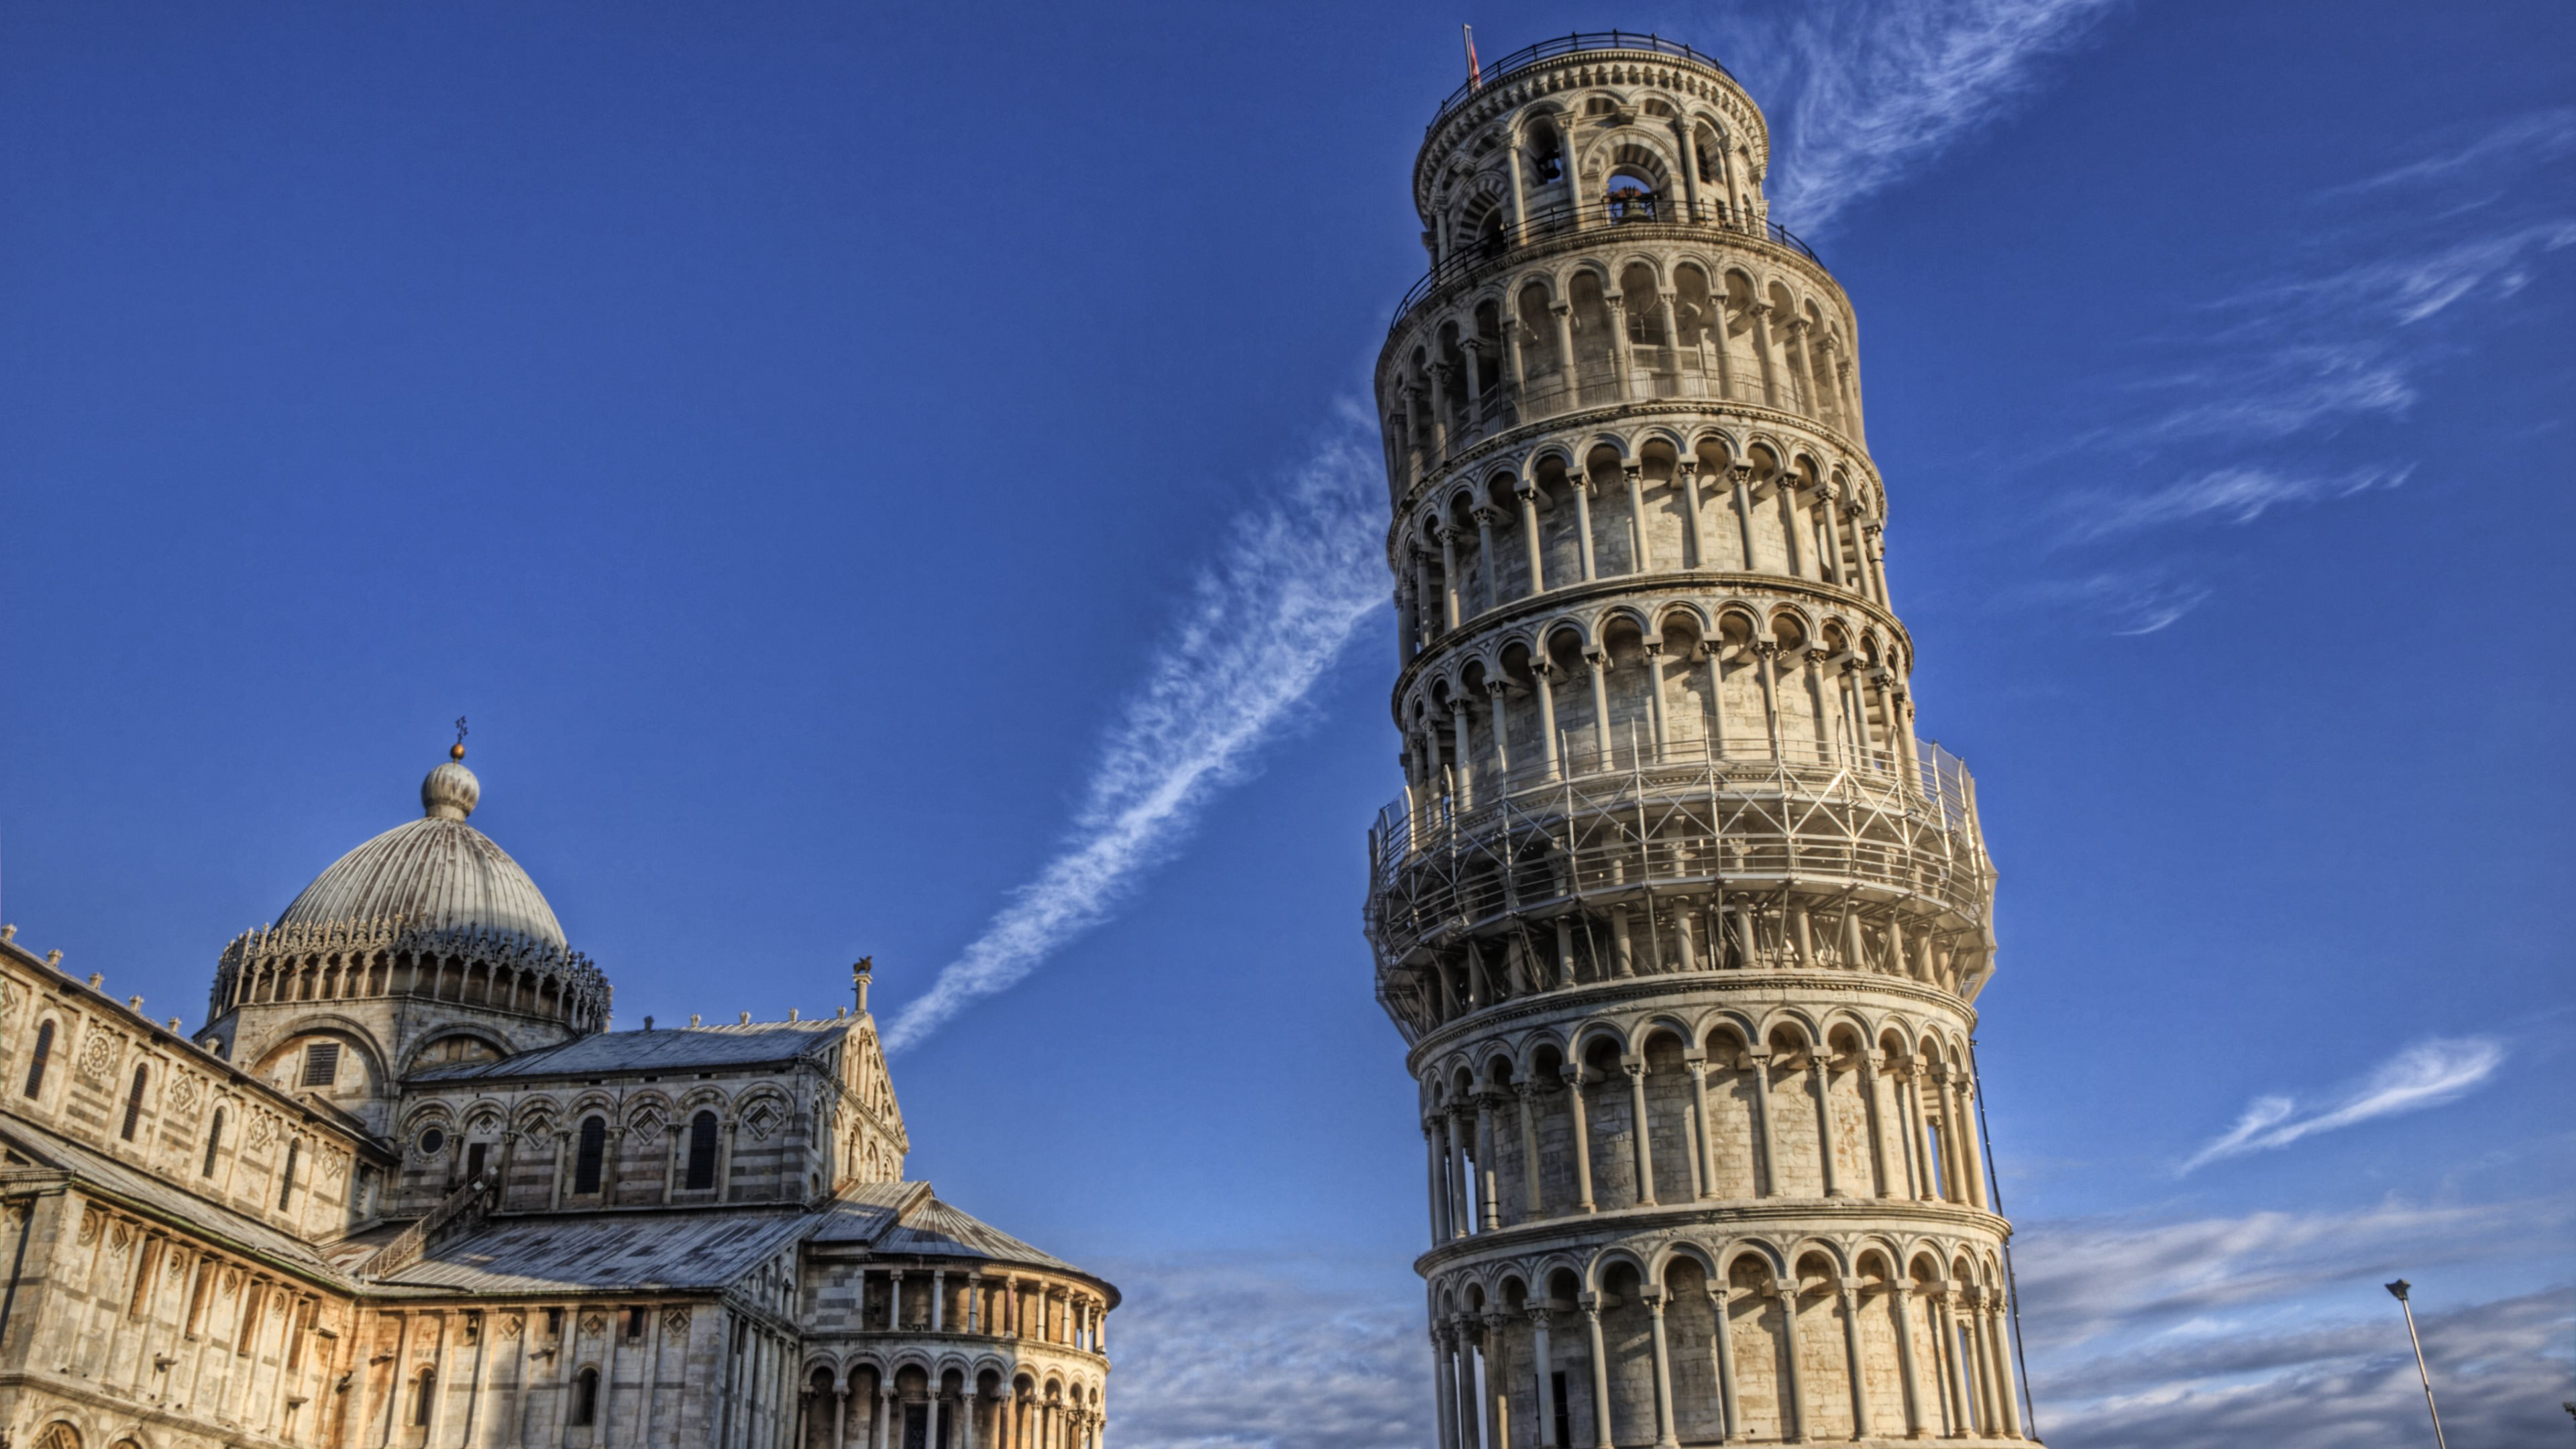 Pisa HD Wallpapers Shining Stuff   Hd Wallparers   Top 10 3840x2160